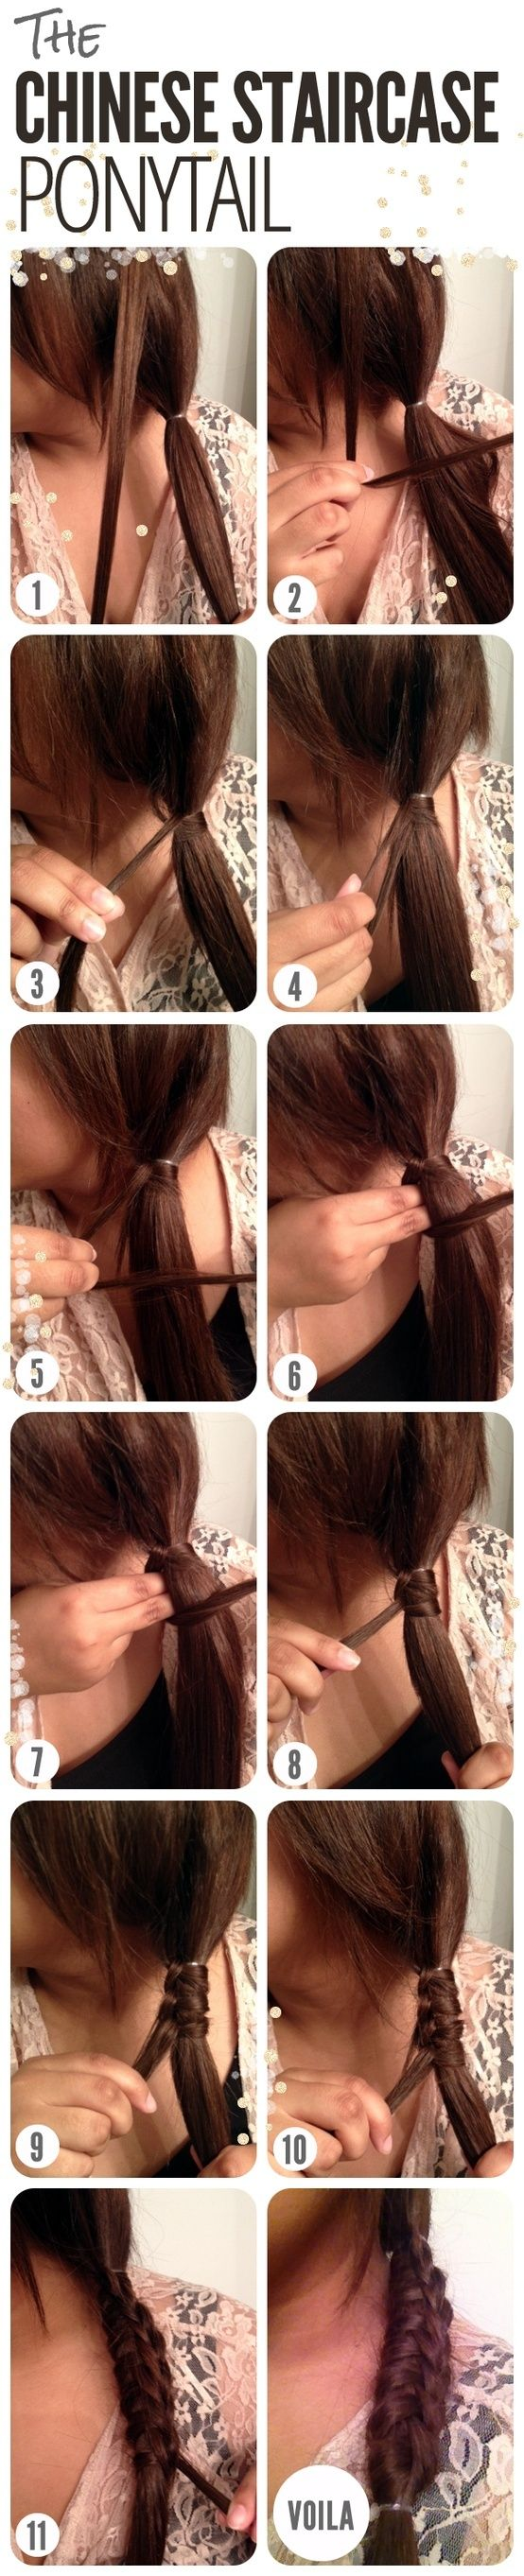 The Chinese Staircase Ponytail. @ Hair Color and Makeover Inspiration